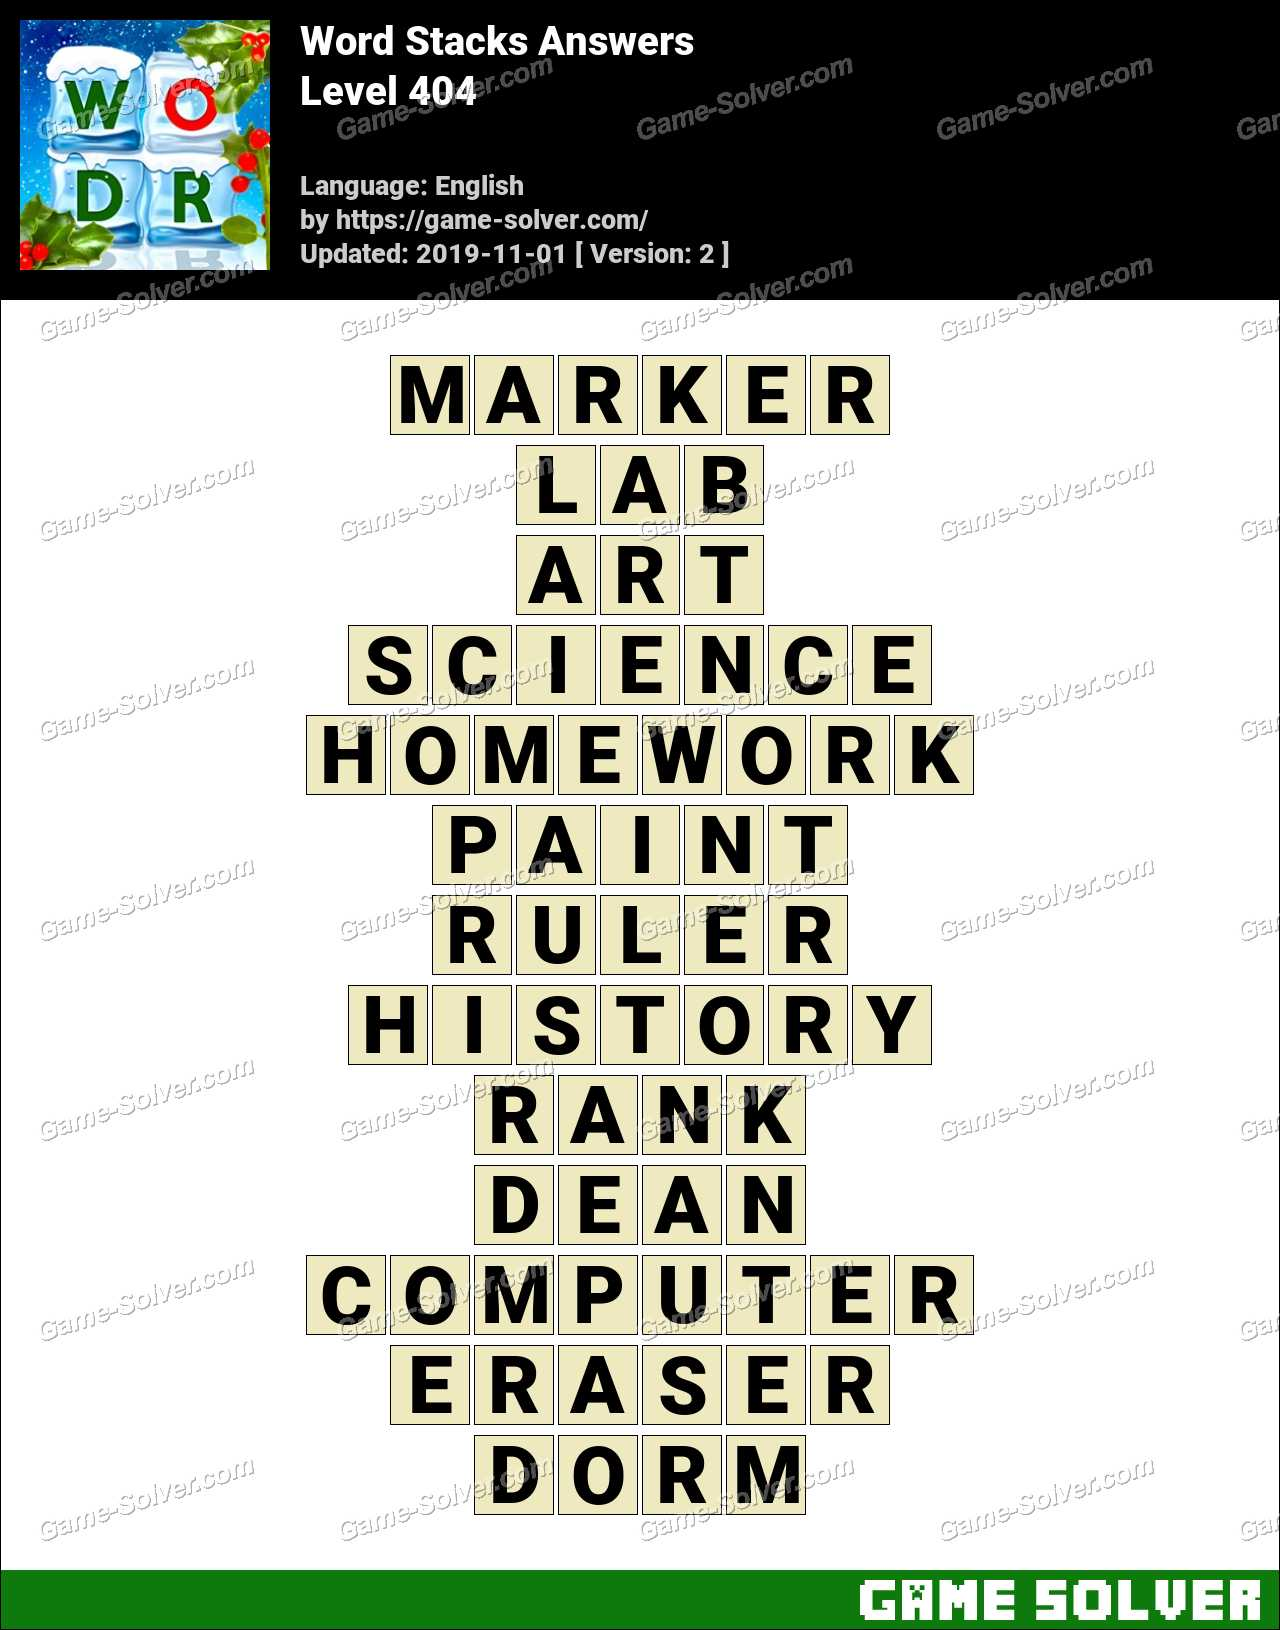 Word Stacks Level 404 Answers